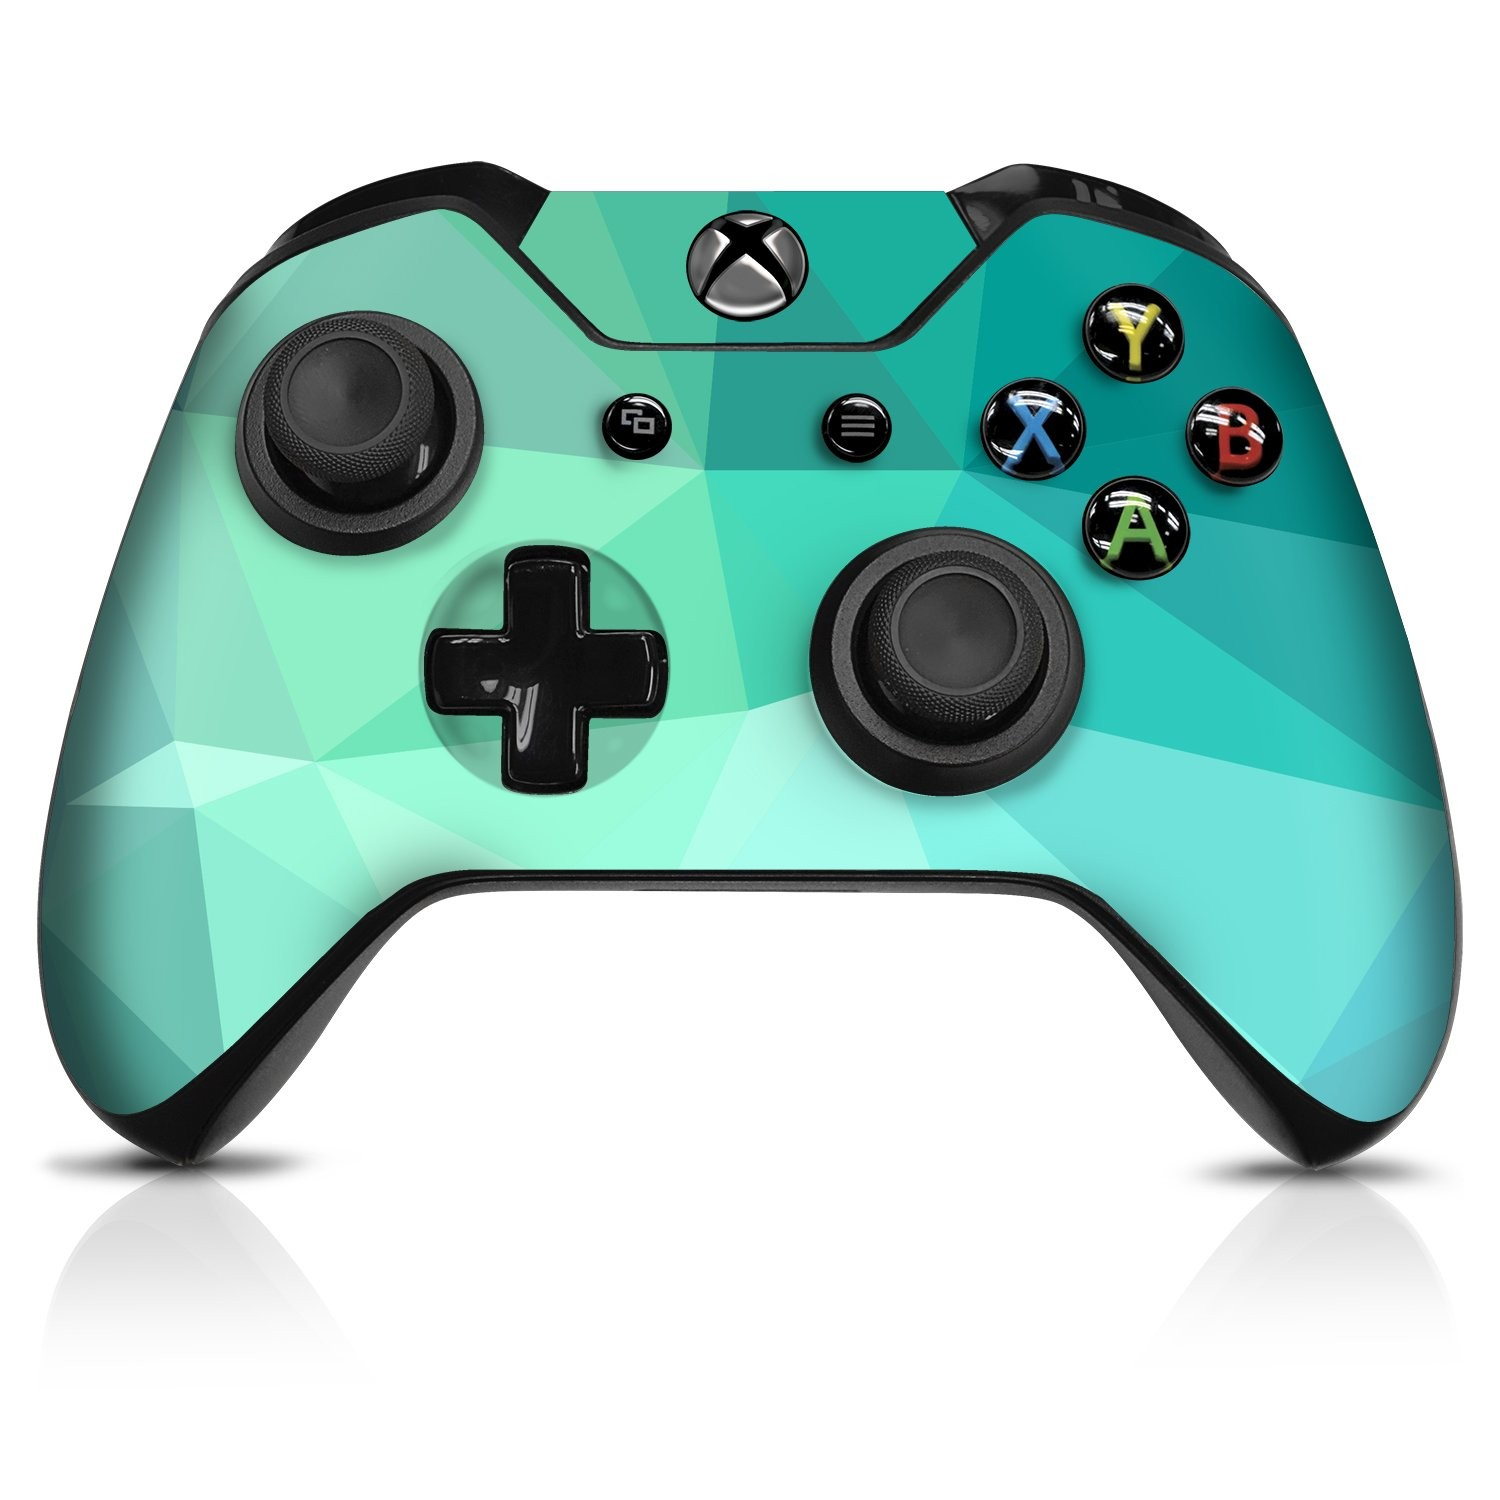 Teal Poly Xbox One Controller Skin - Officially Licensed by Xbox - Controller Gear